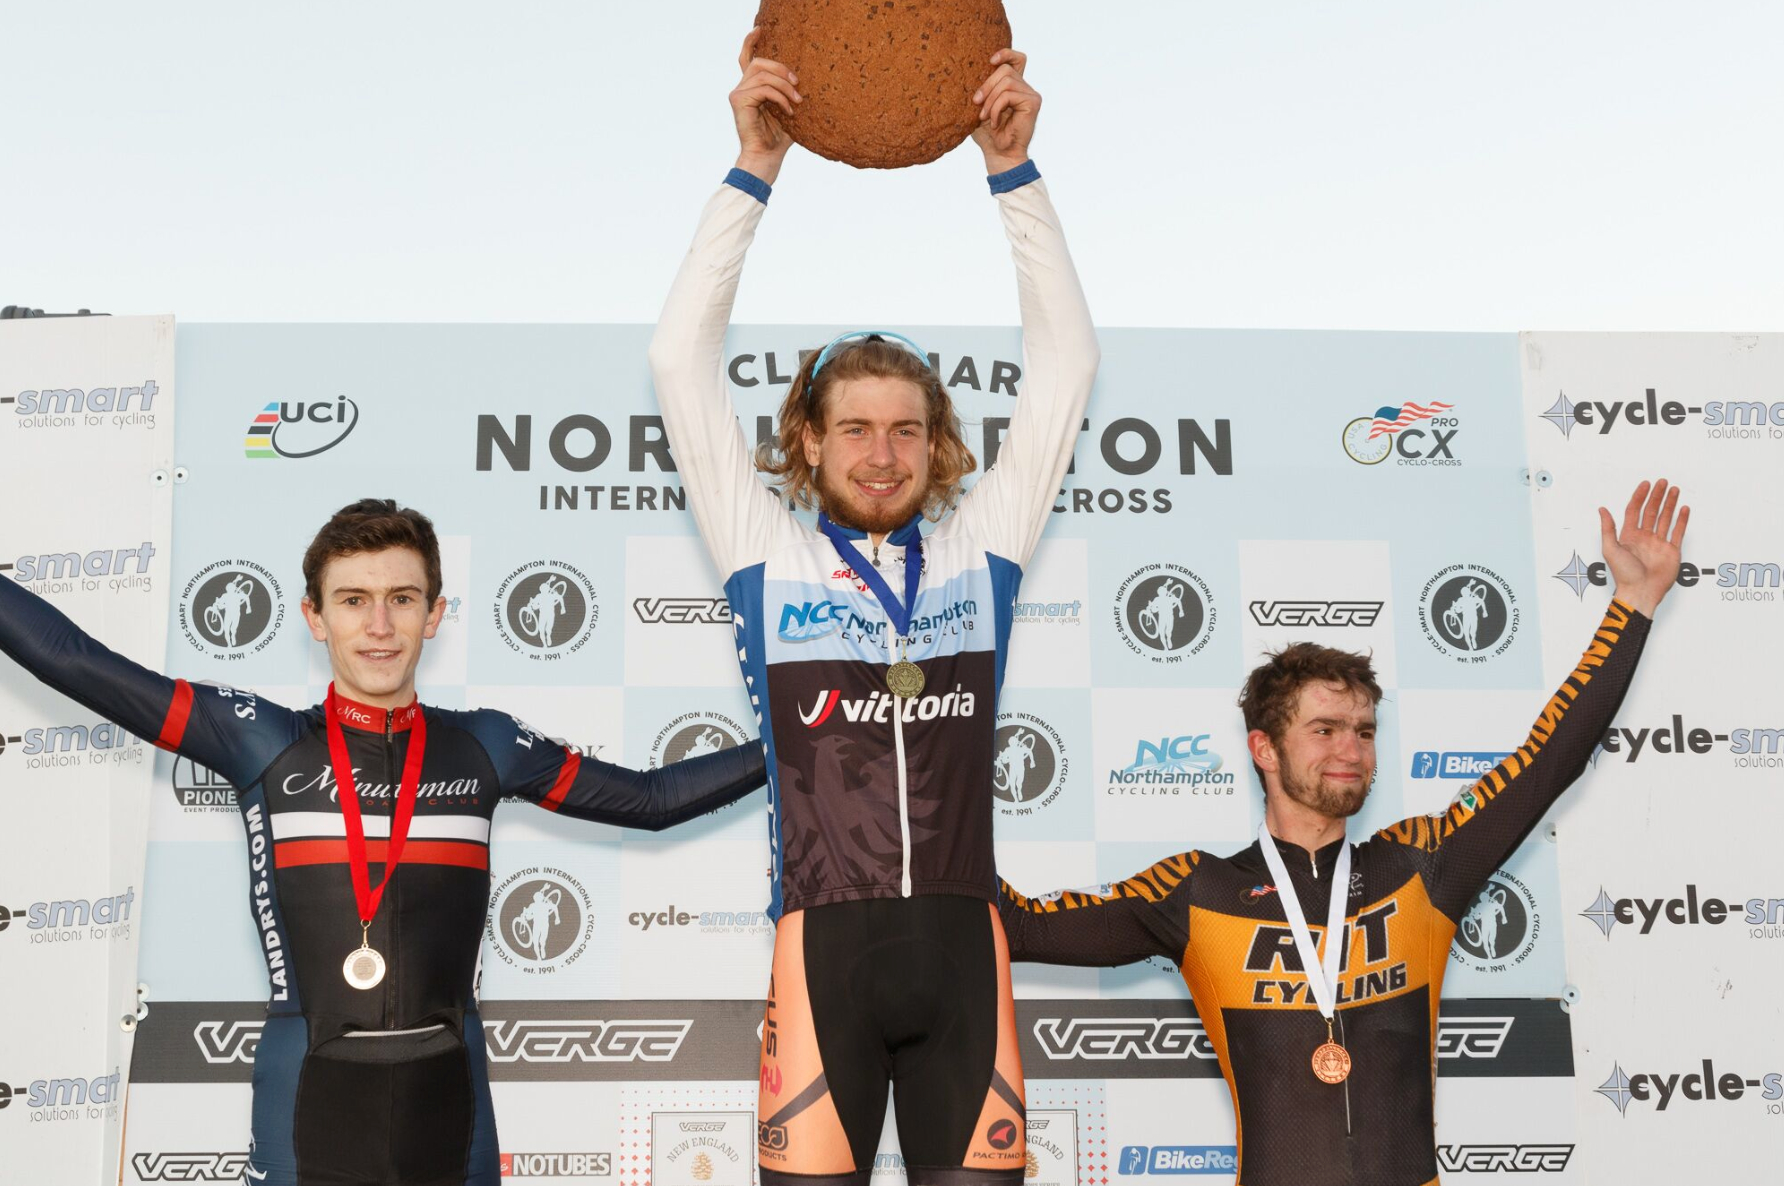 Victory is sweet! Scott Smith won the U23 at the Cycle-Smart Northampton International on Saturday and Sunday. Tart Baking Co. supplied the winner's cookie. Photo by Todd Prekaski.